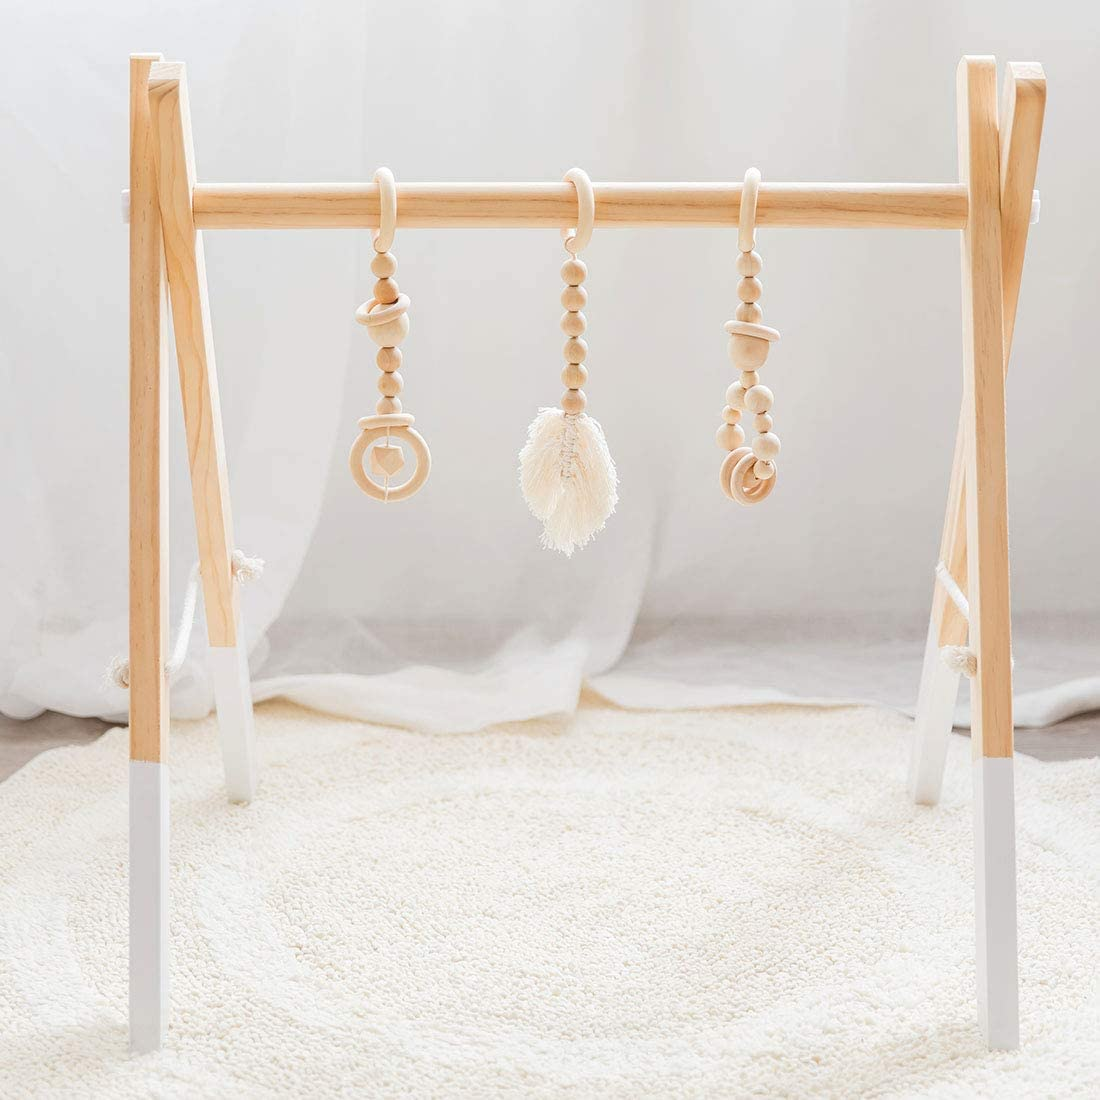 lets make Wood Baby Gym Toys Pendant 3 Piece Set Bed Hanging Baby Play Gym Educational Toys Baby Room Decoration Nordic Style Newborn Gift